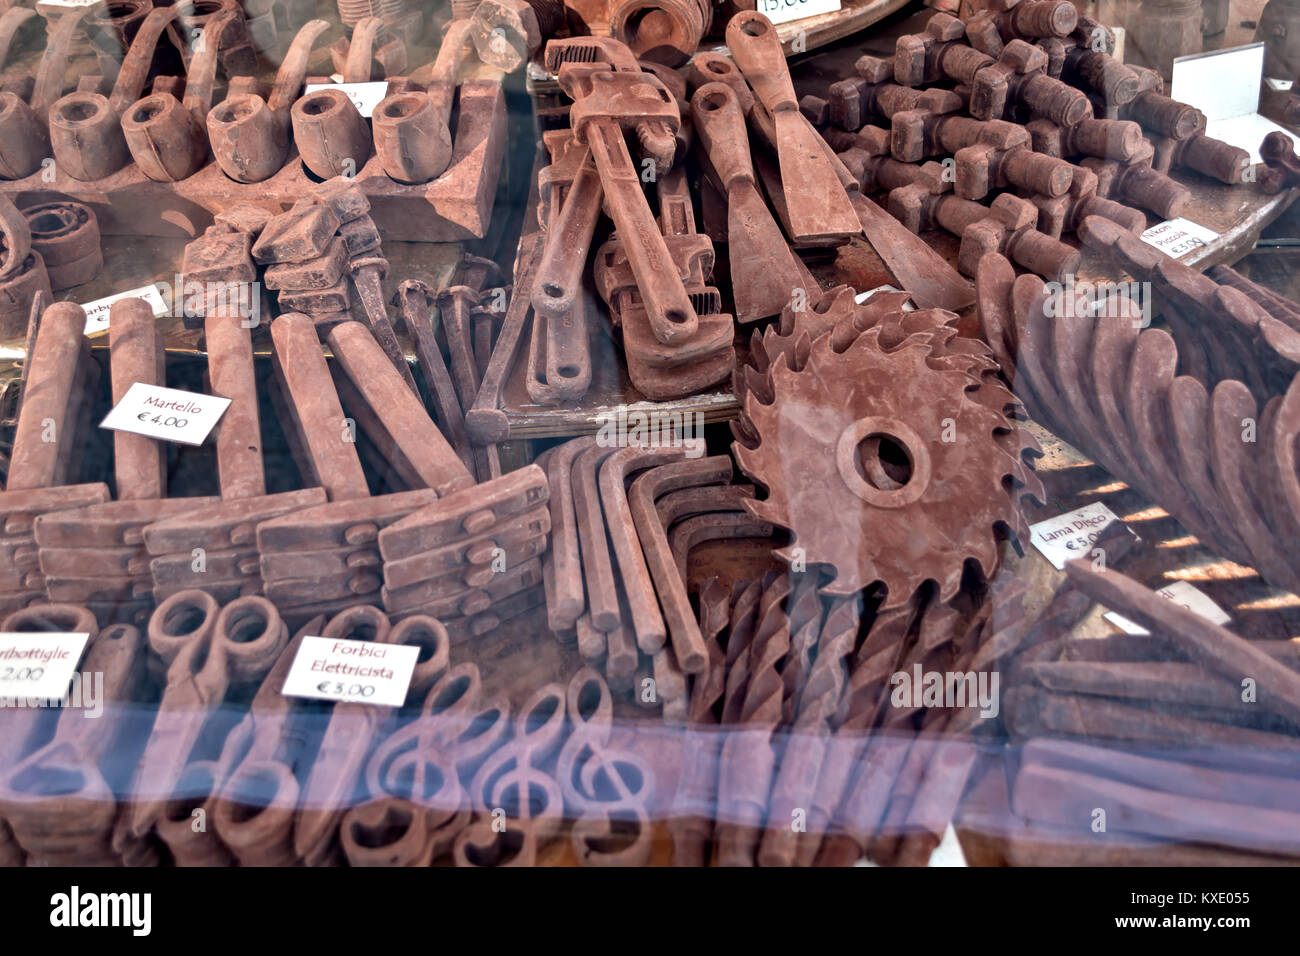 chocolate sculptures at Christmas markets - Stock Image